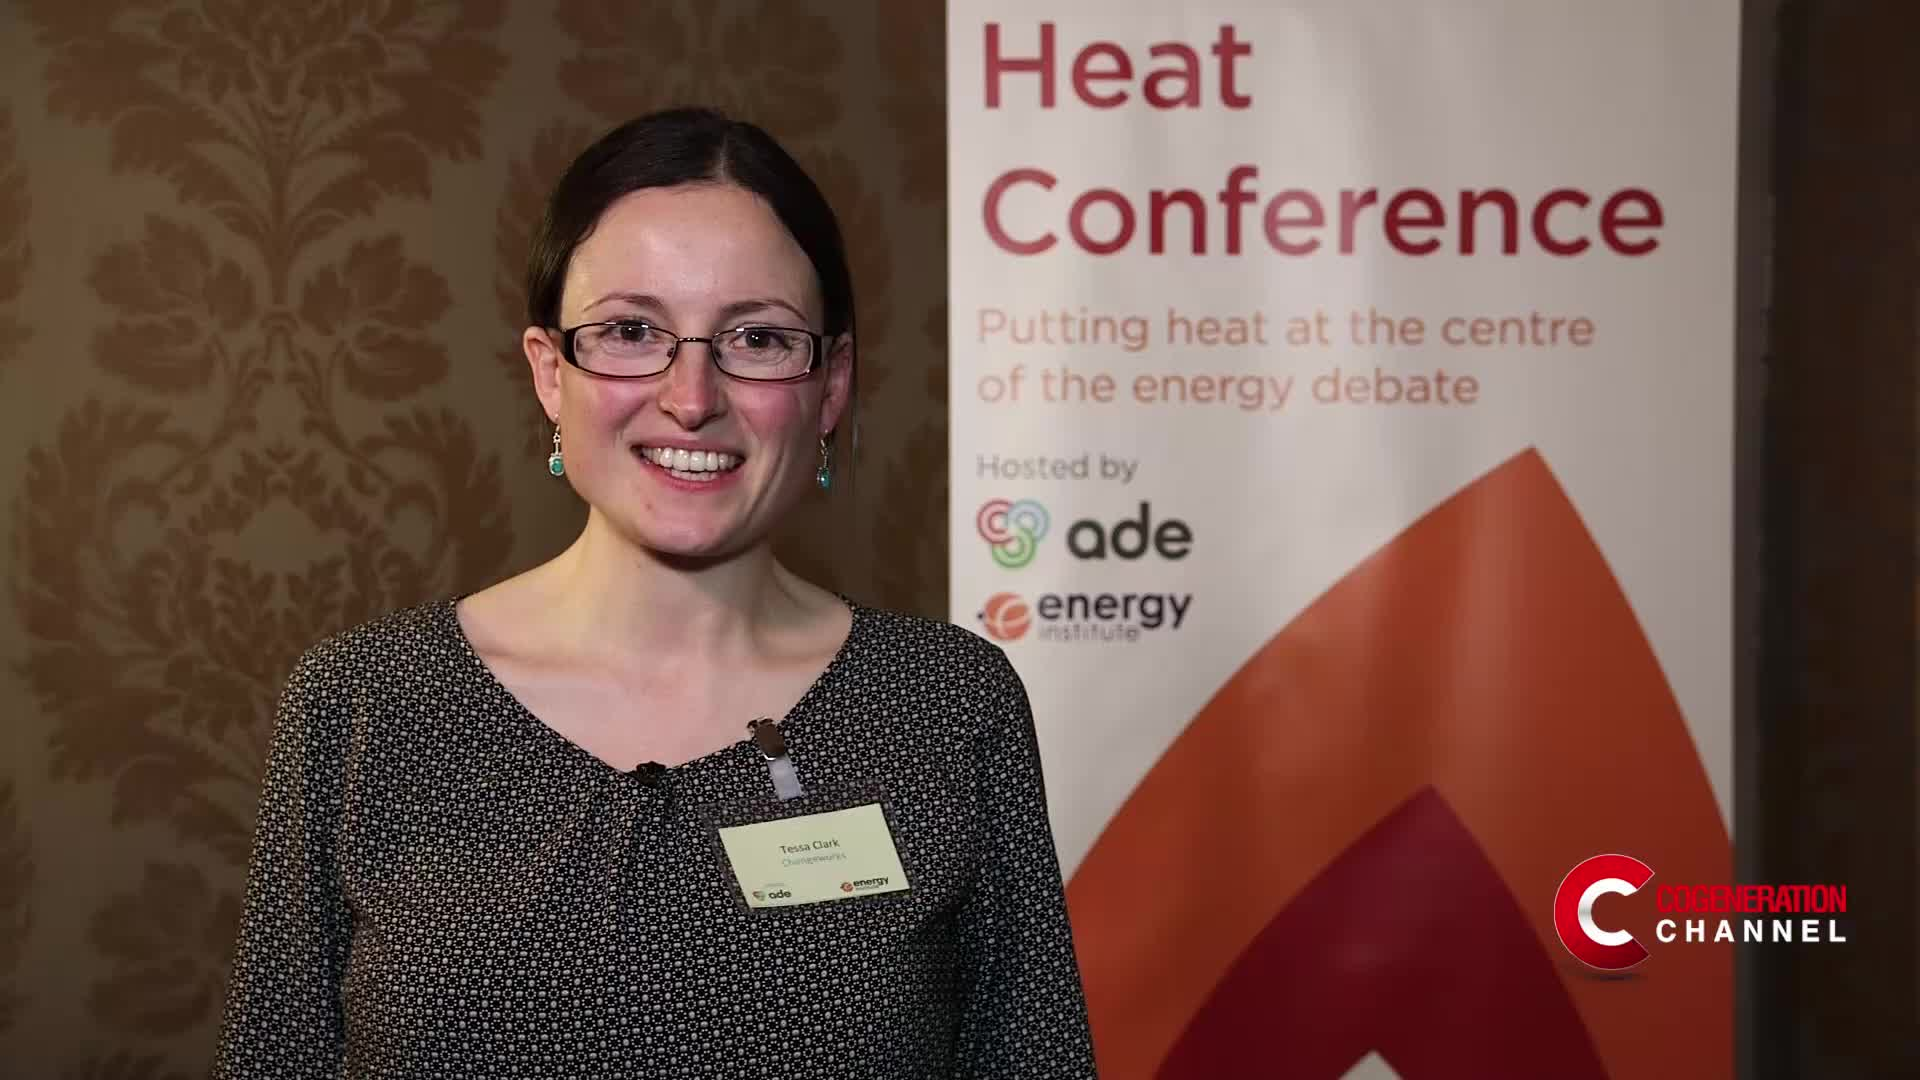 District heating as an opportunity for local communities